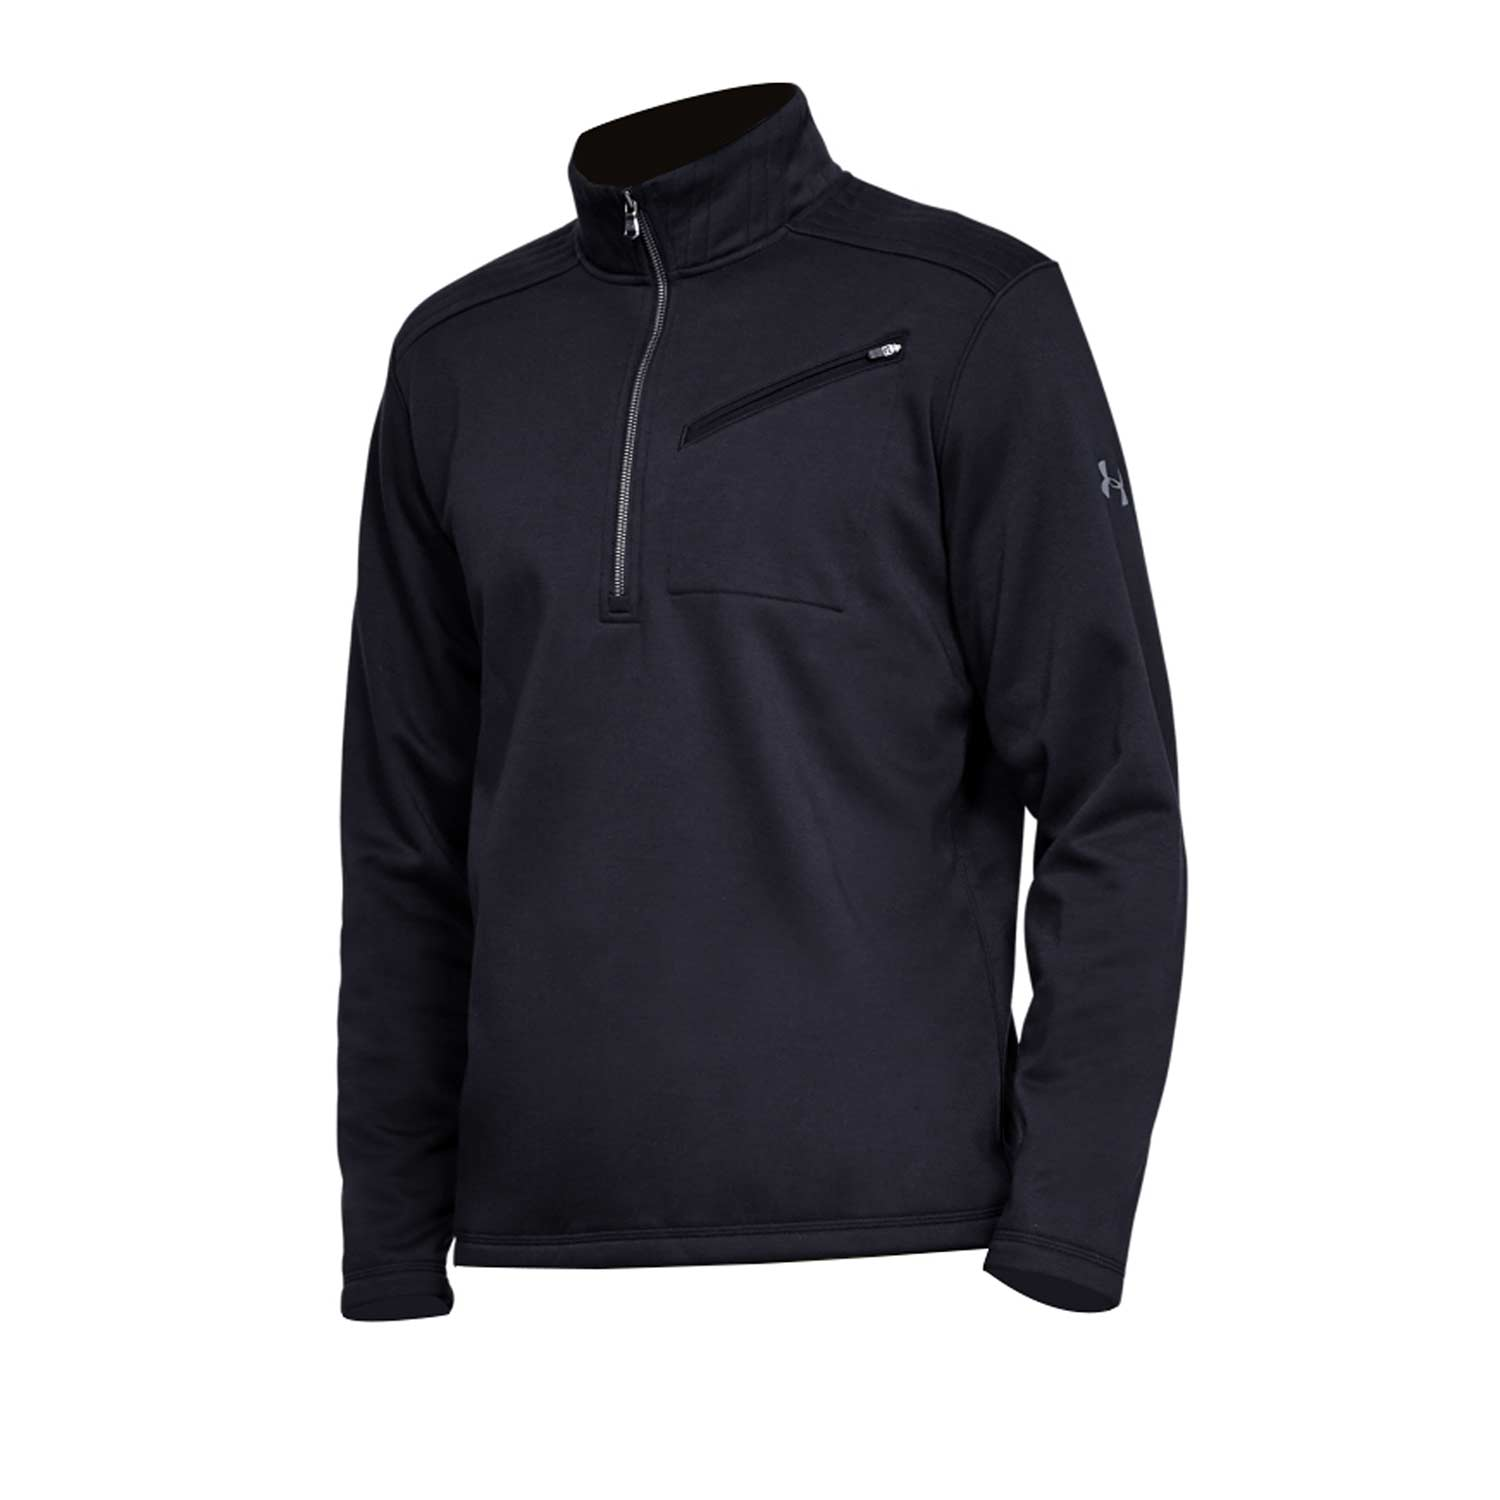 Under Armour Tac All Purpose 1/2 Zip Shirt